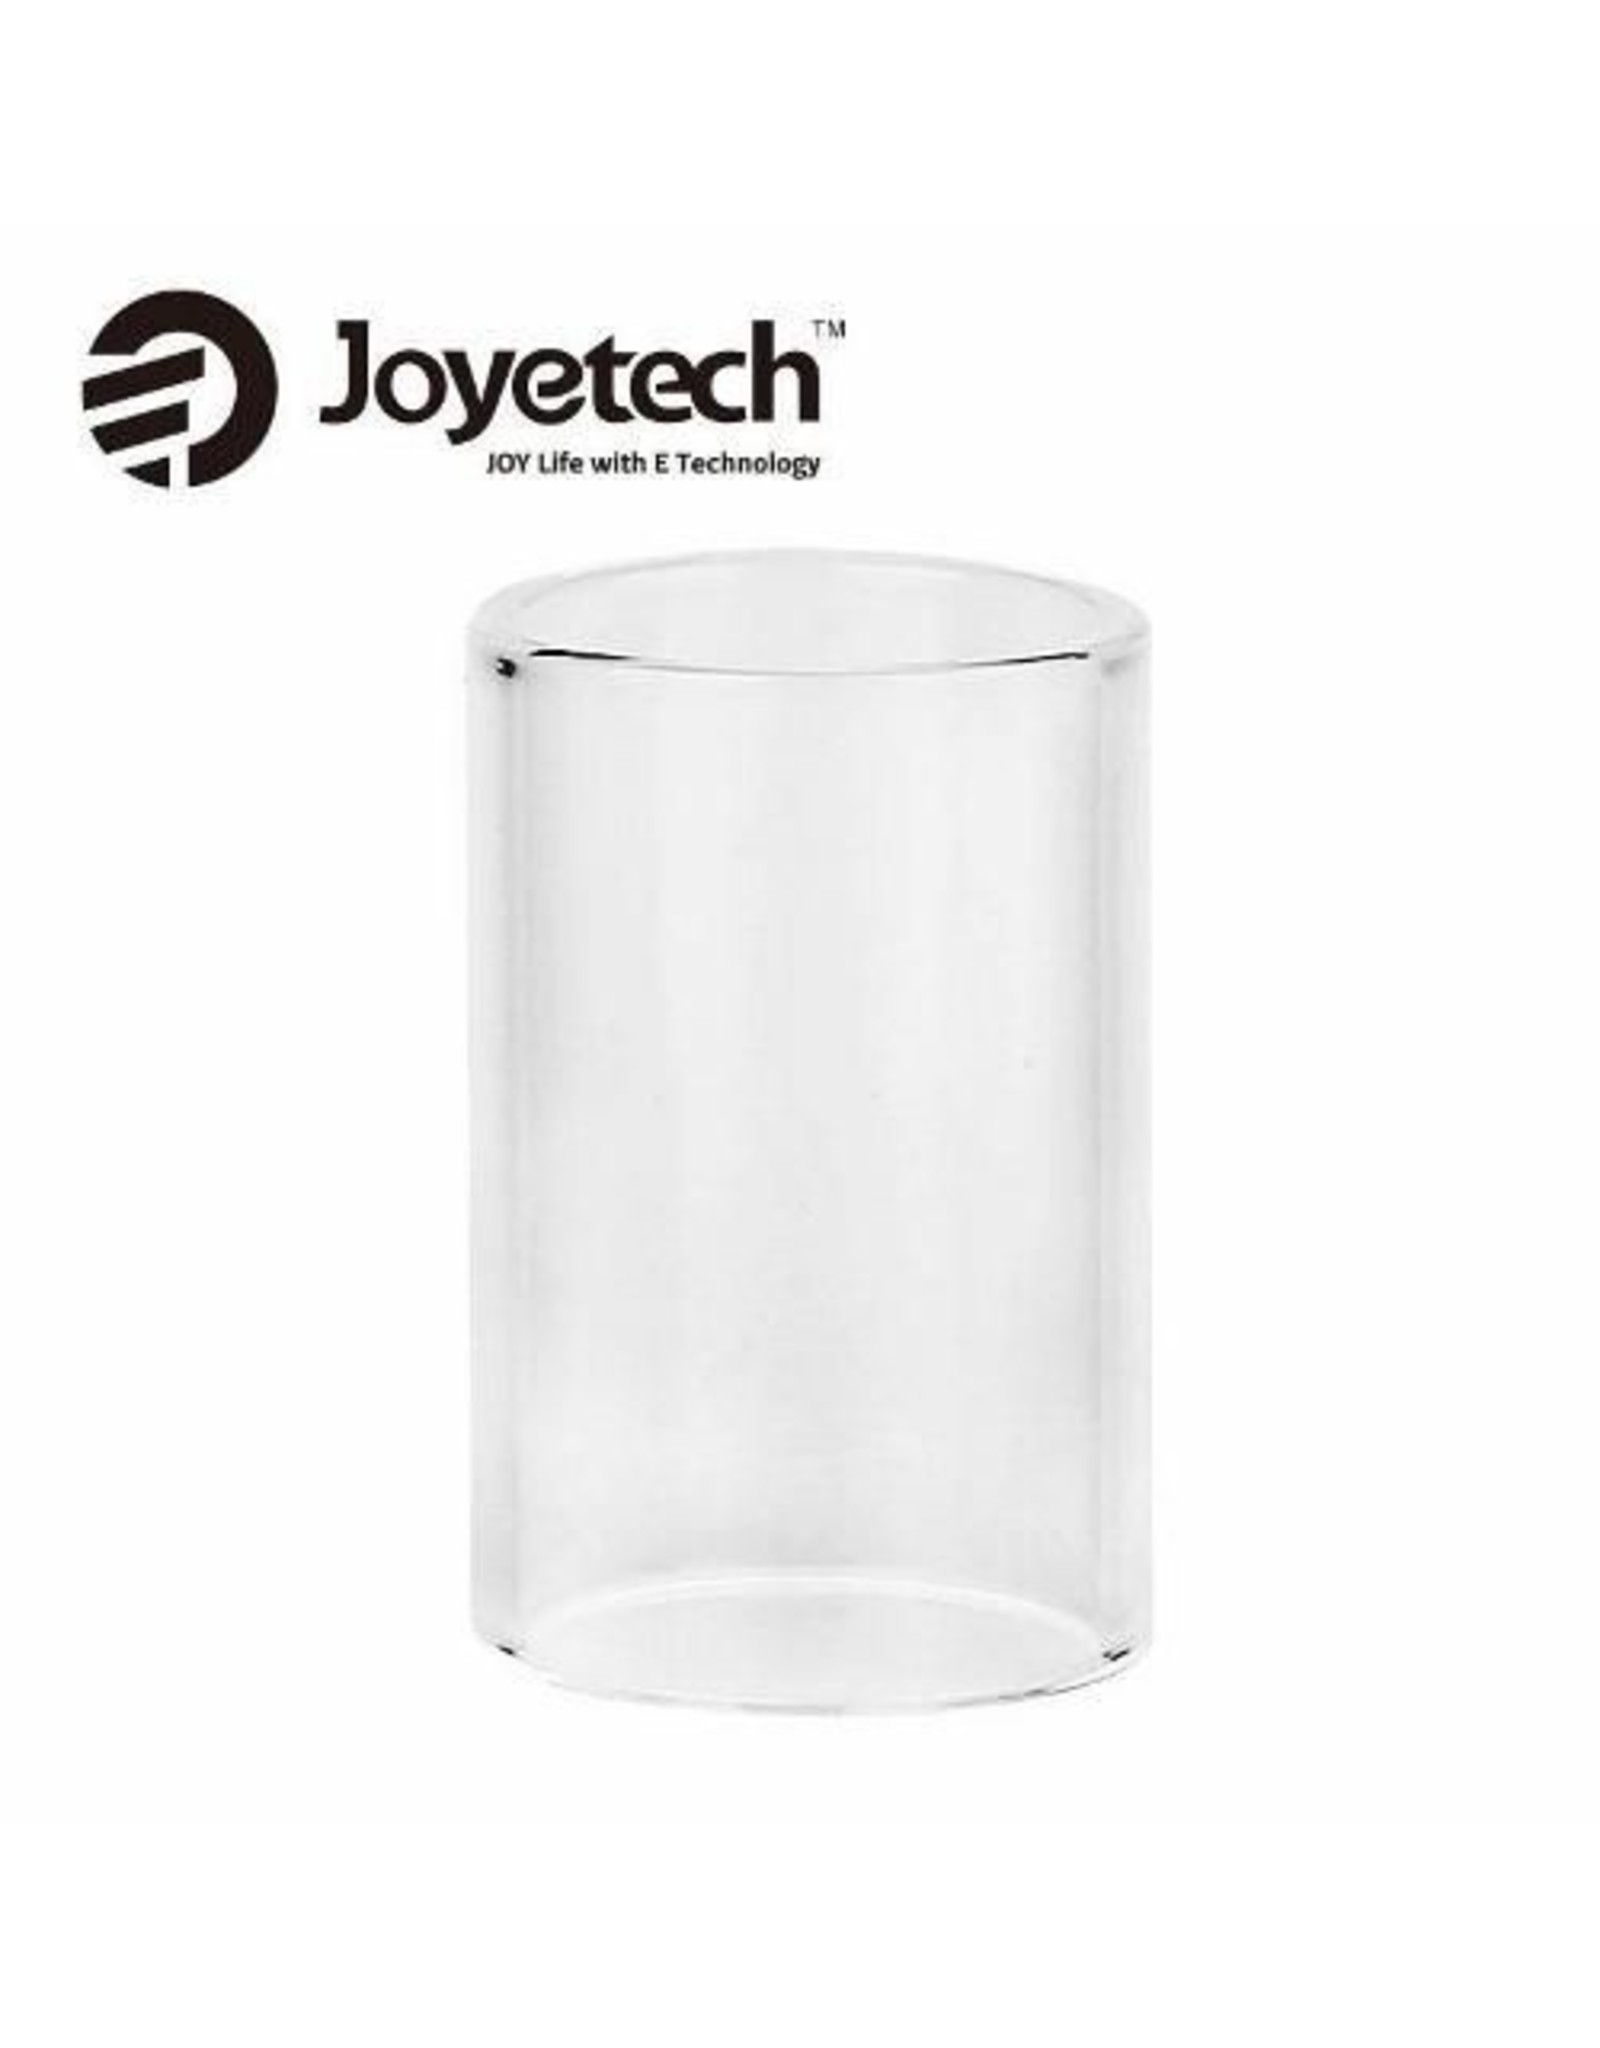 Joyetech Joyetech eGo AIO ECO Replacement Glass